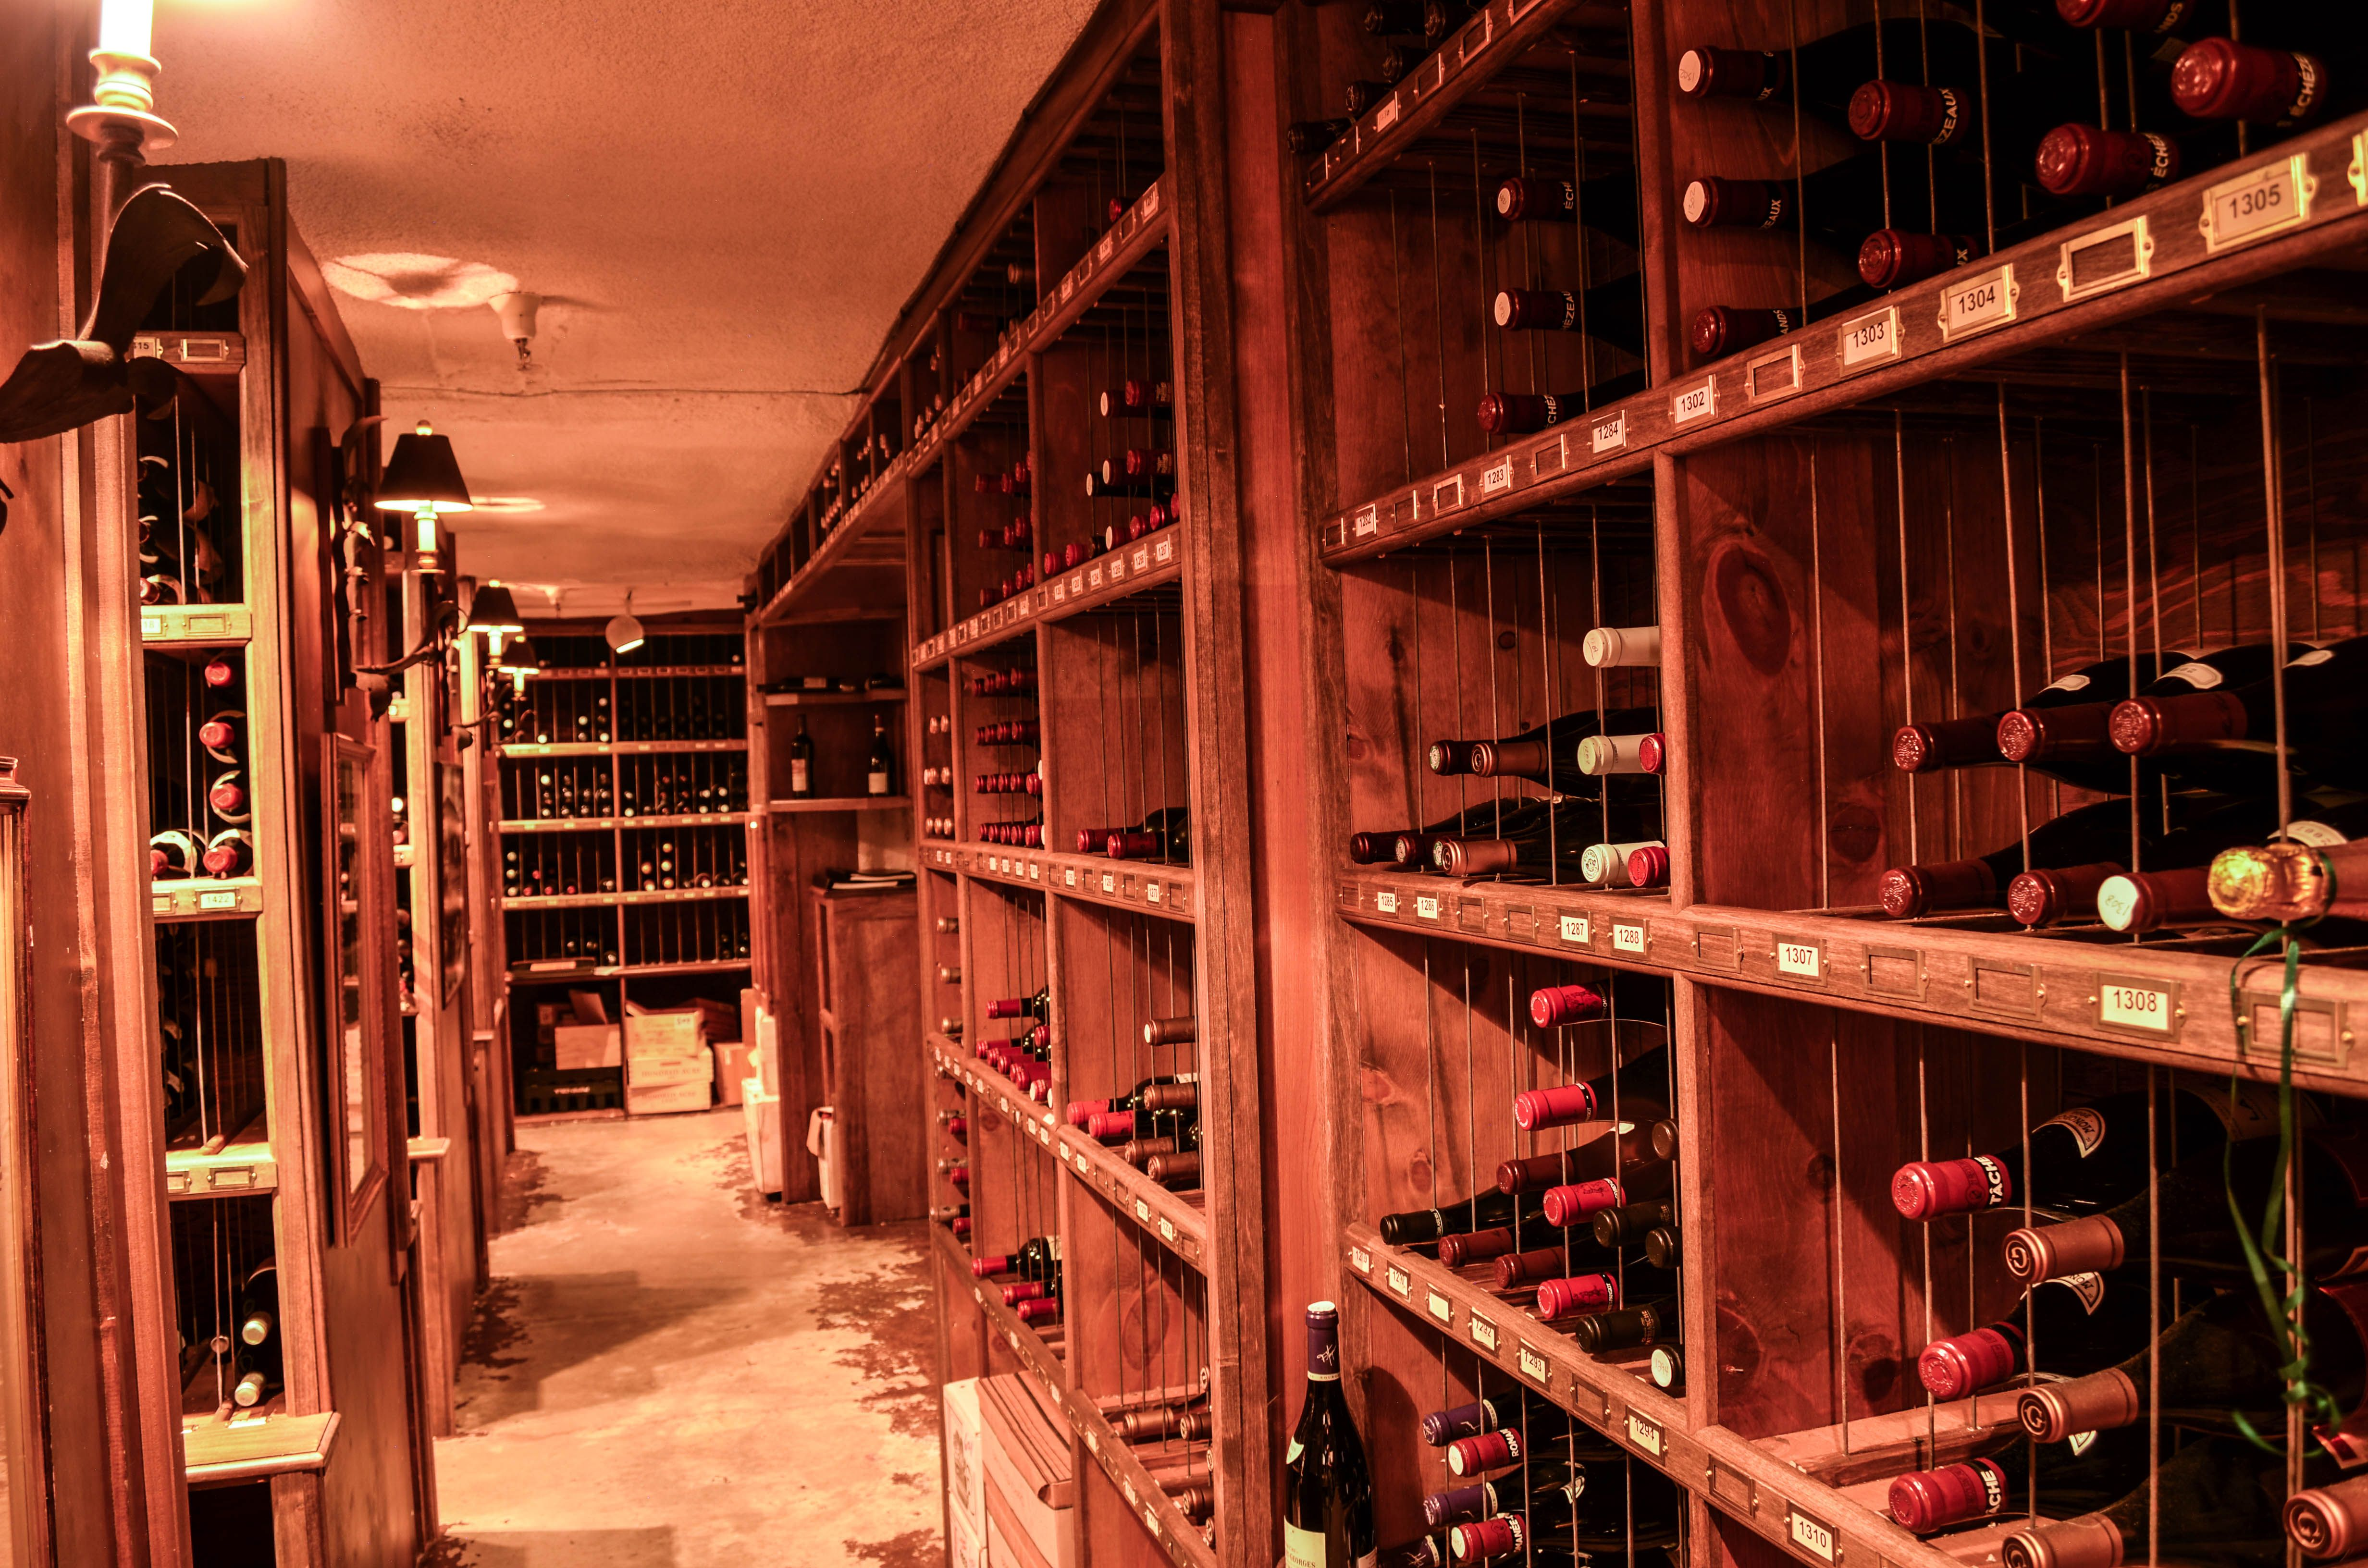 Pin By Angus Barn On Angus Barn Wine Cellar Wine Cellar Wonderful Places Diner